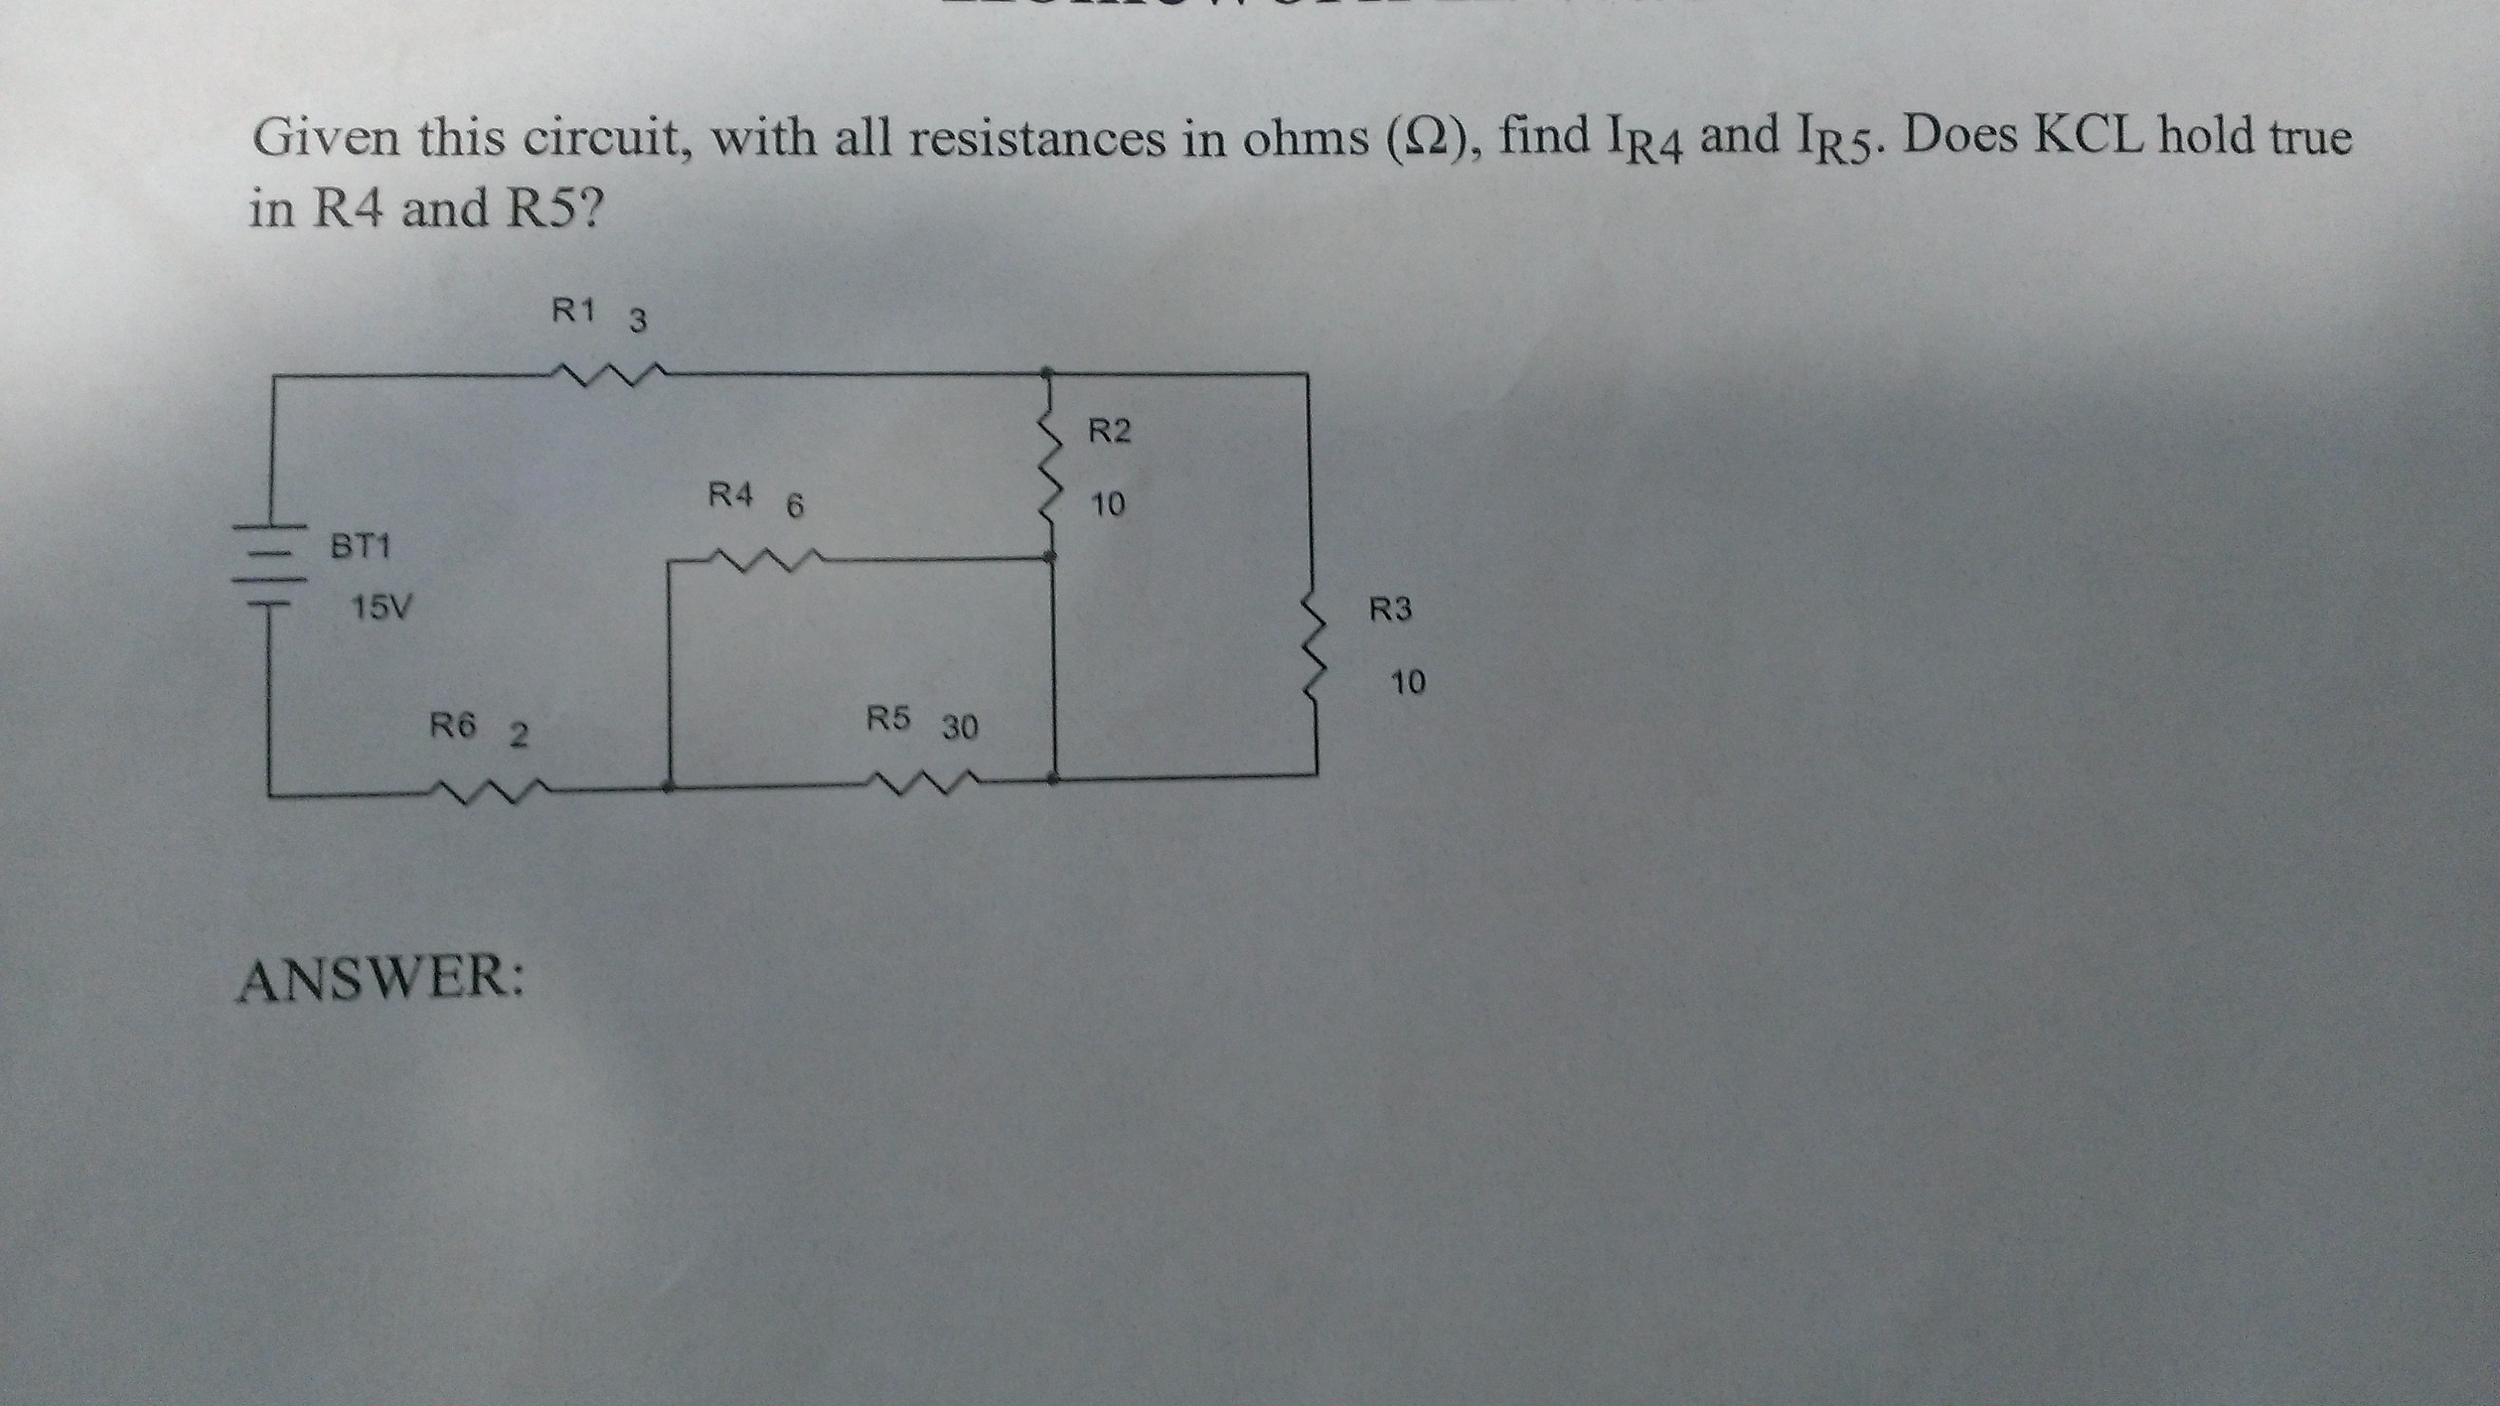 Given this circuit, with all resistances in Ohm s